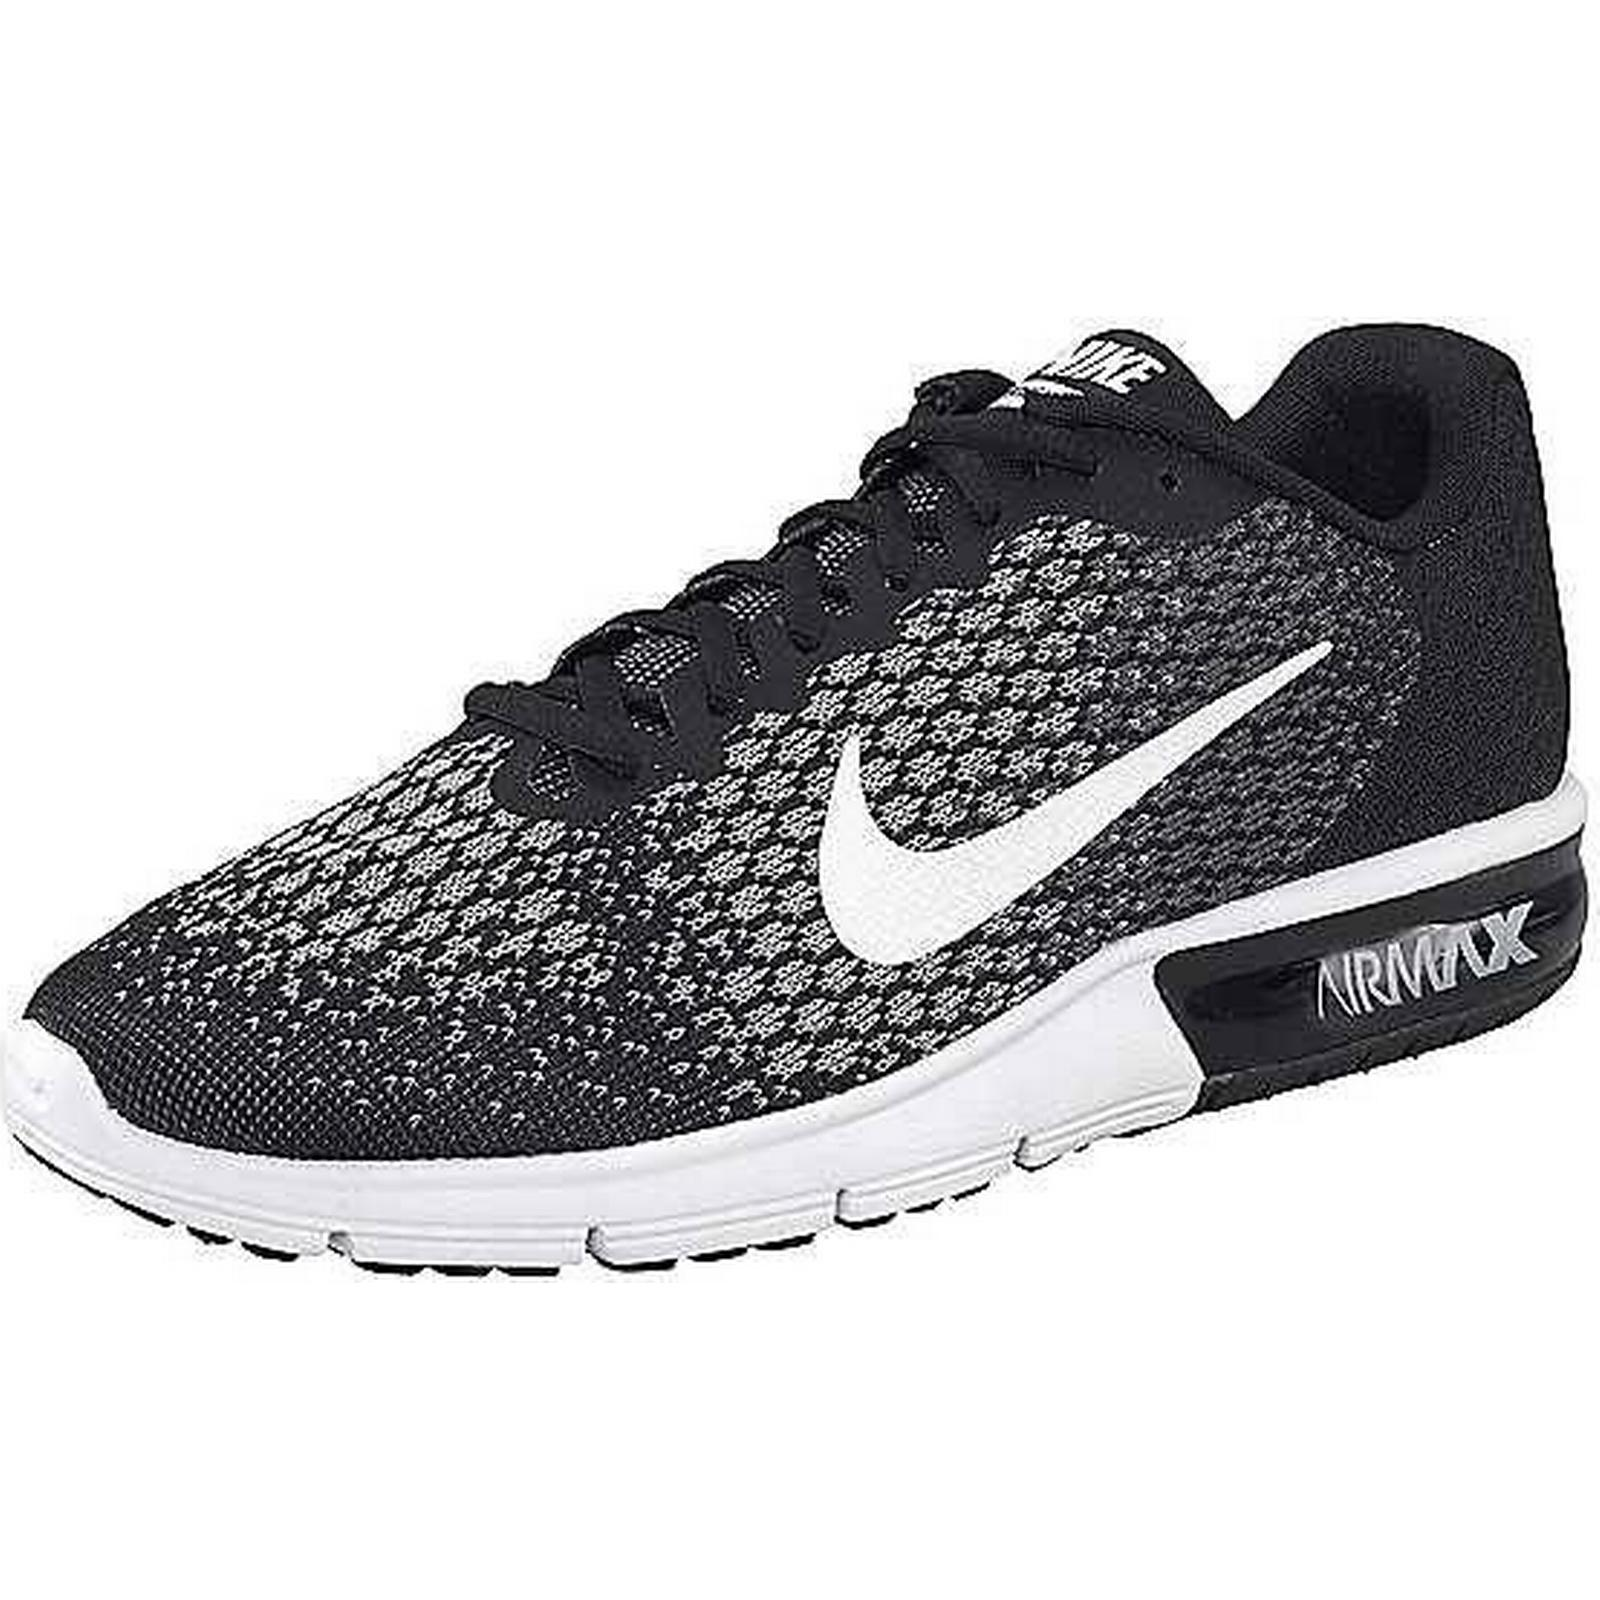 Man/Woman - 2' Nike 'Air Max Sequent 2' - Trainers by Nike - Wear-resist c03ba5